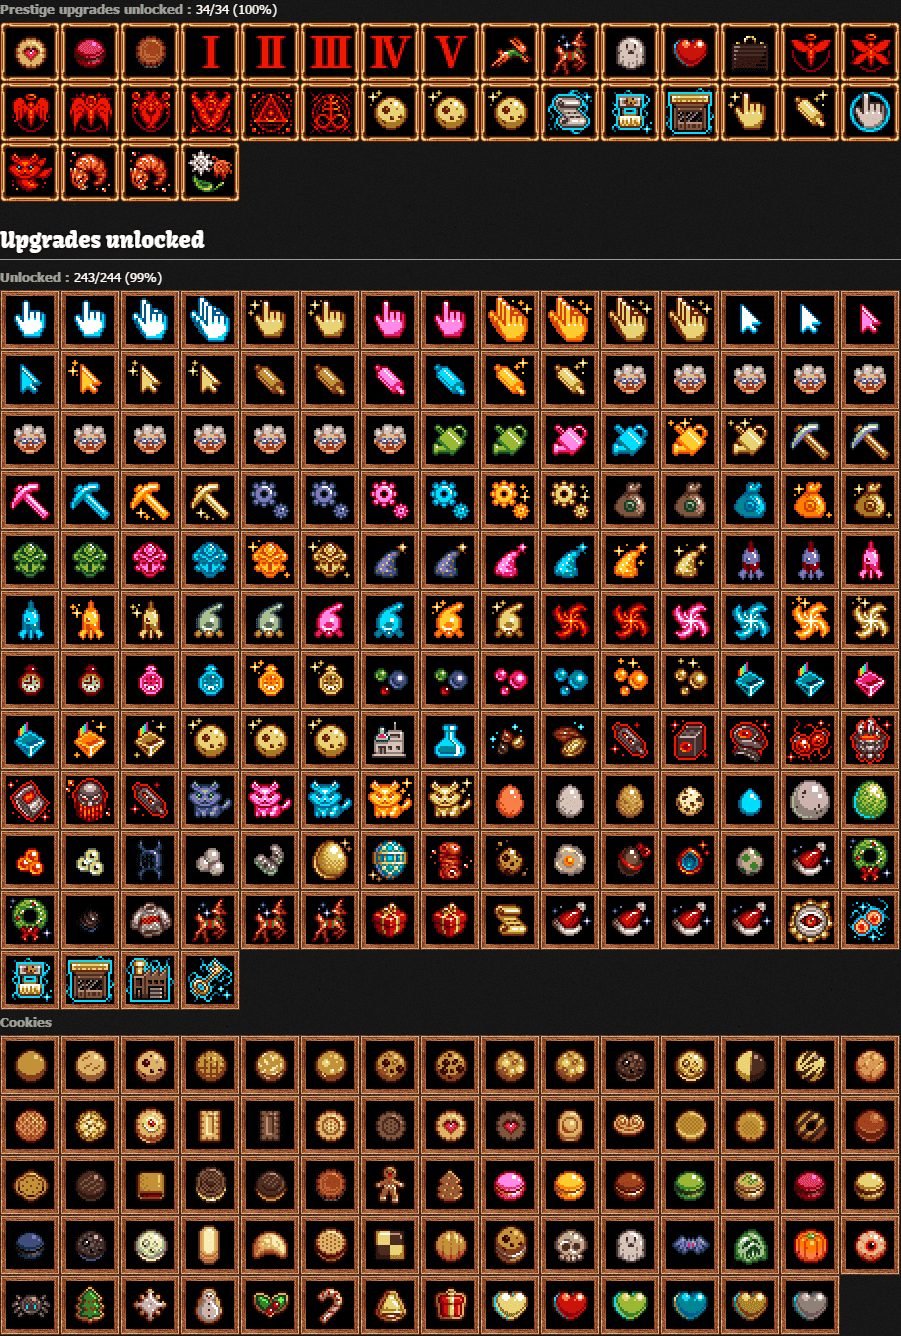 Missing An Upgrade, 1 0501 Beta  Which One   (   Cookieclicker